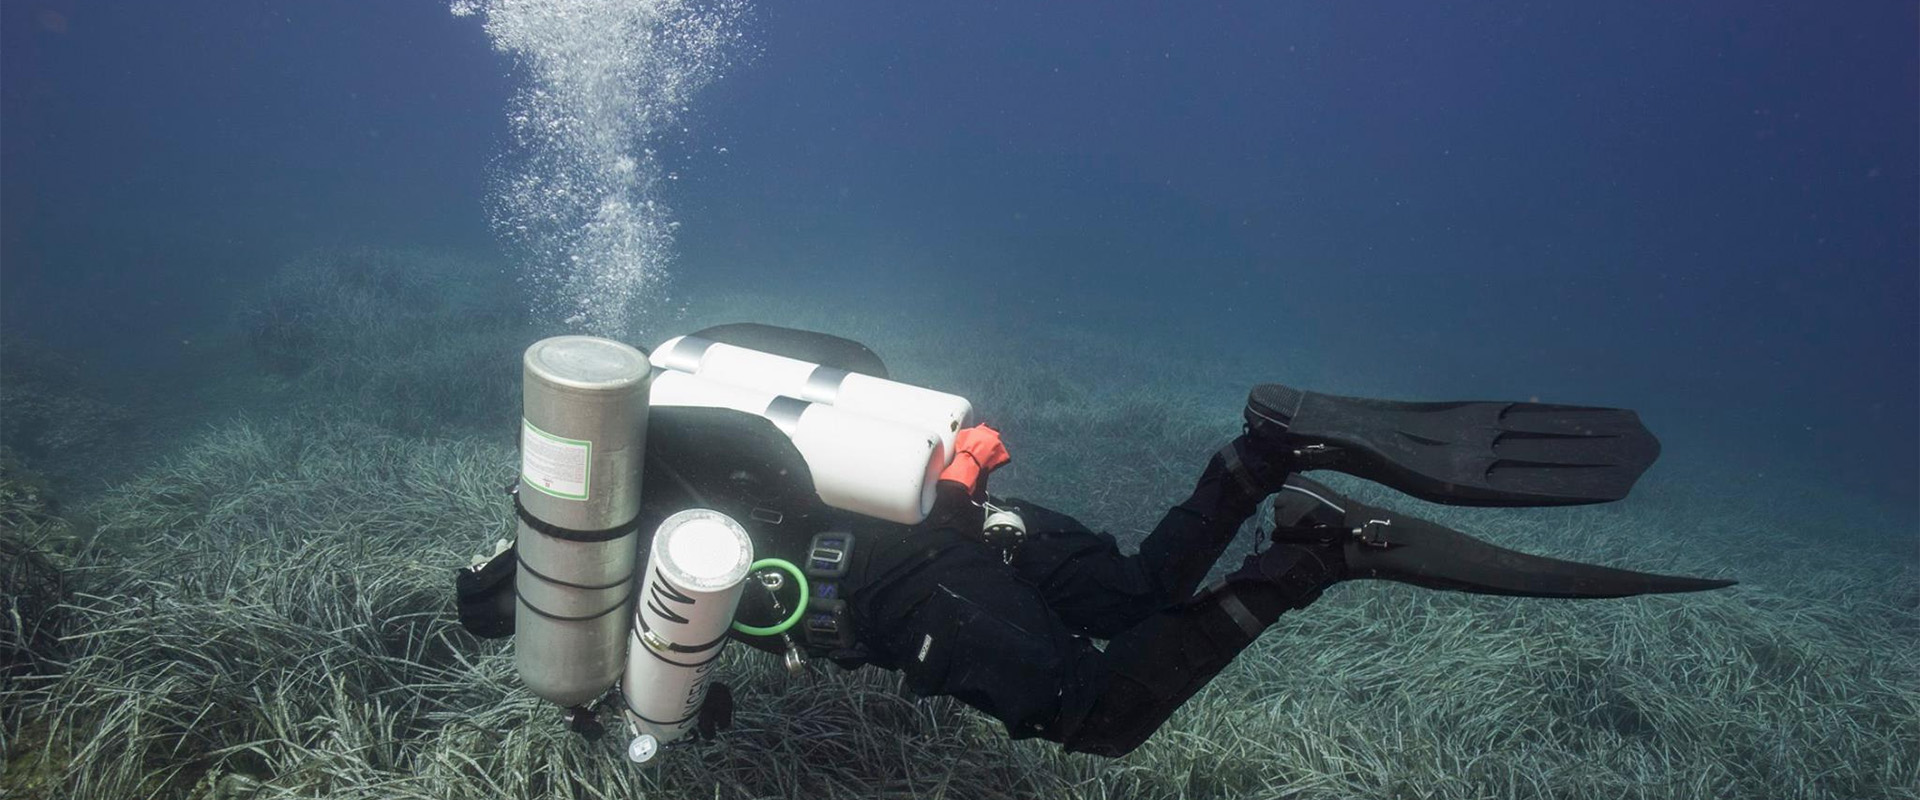 ngue_diving-school_technical-diving-001